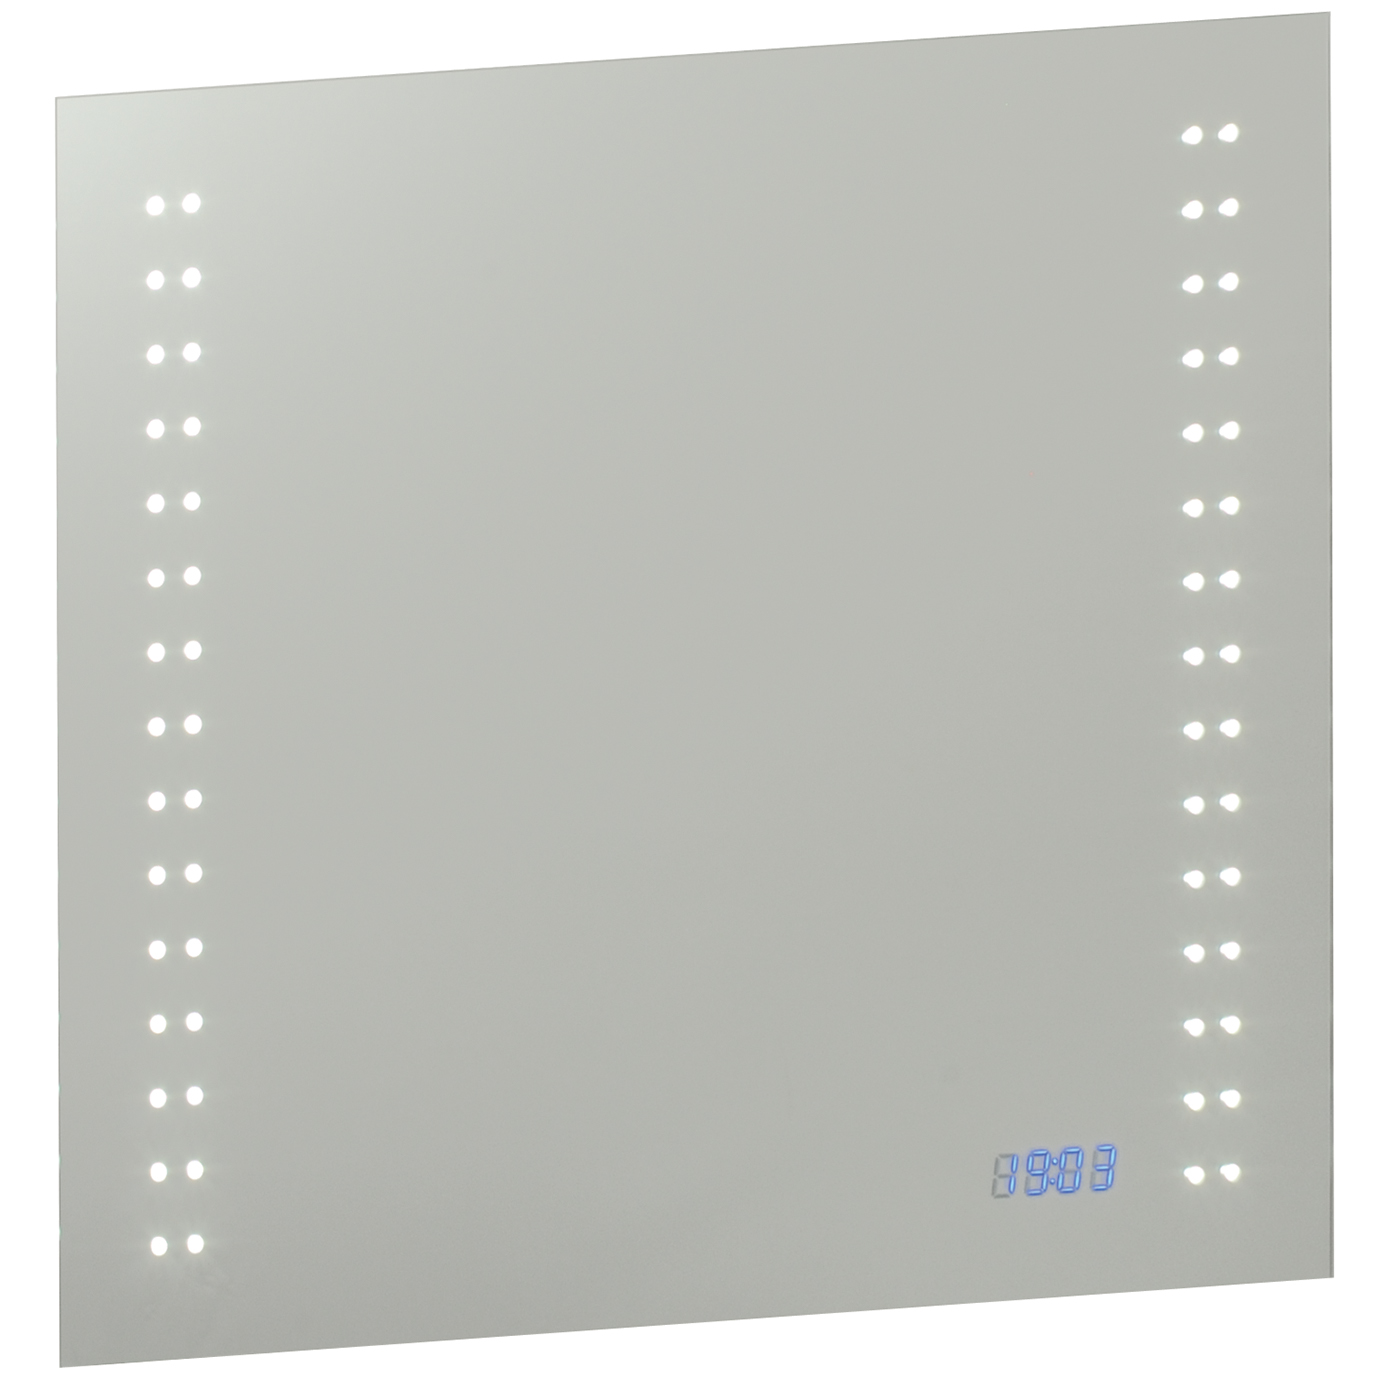 Endon Beta LED shaver bathroom mirror IP44 2W sensor H: 600mm W: 700mm Thumbnail 1